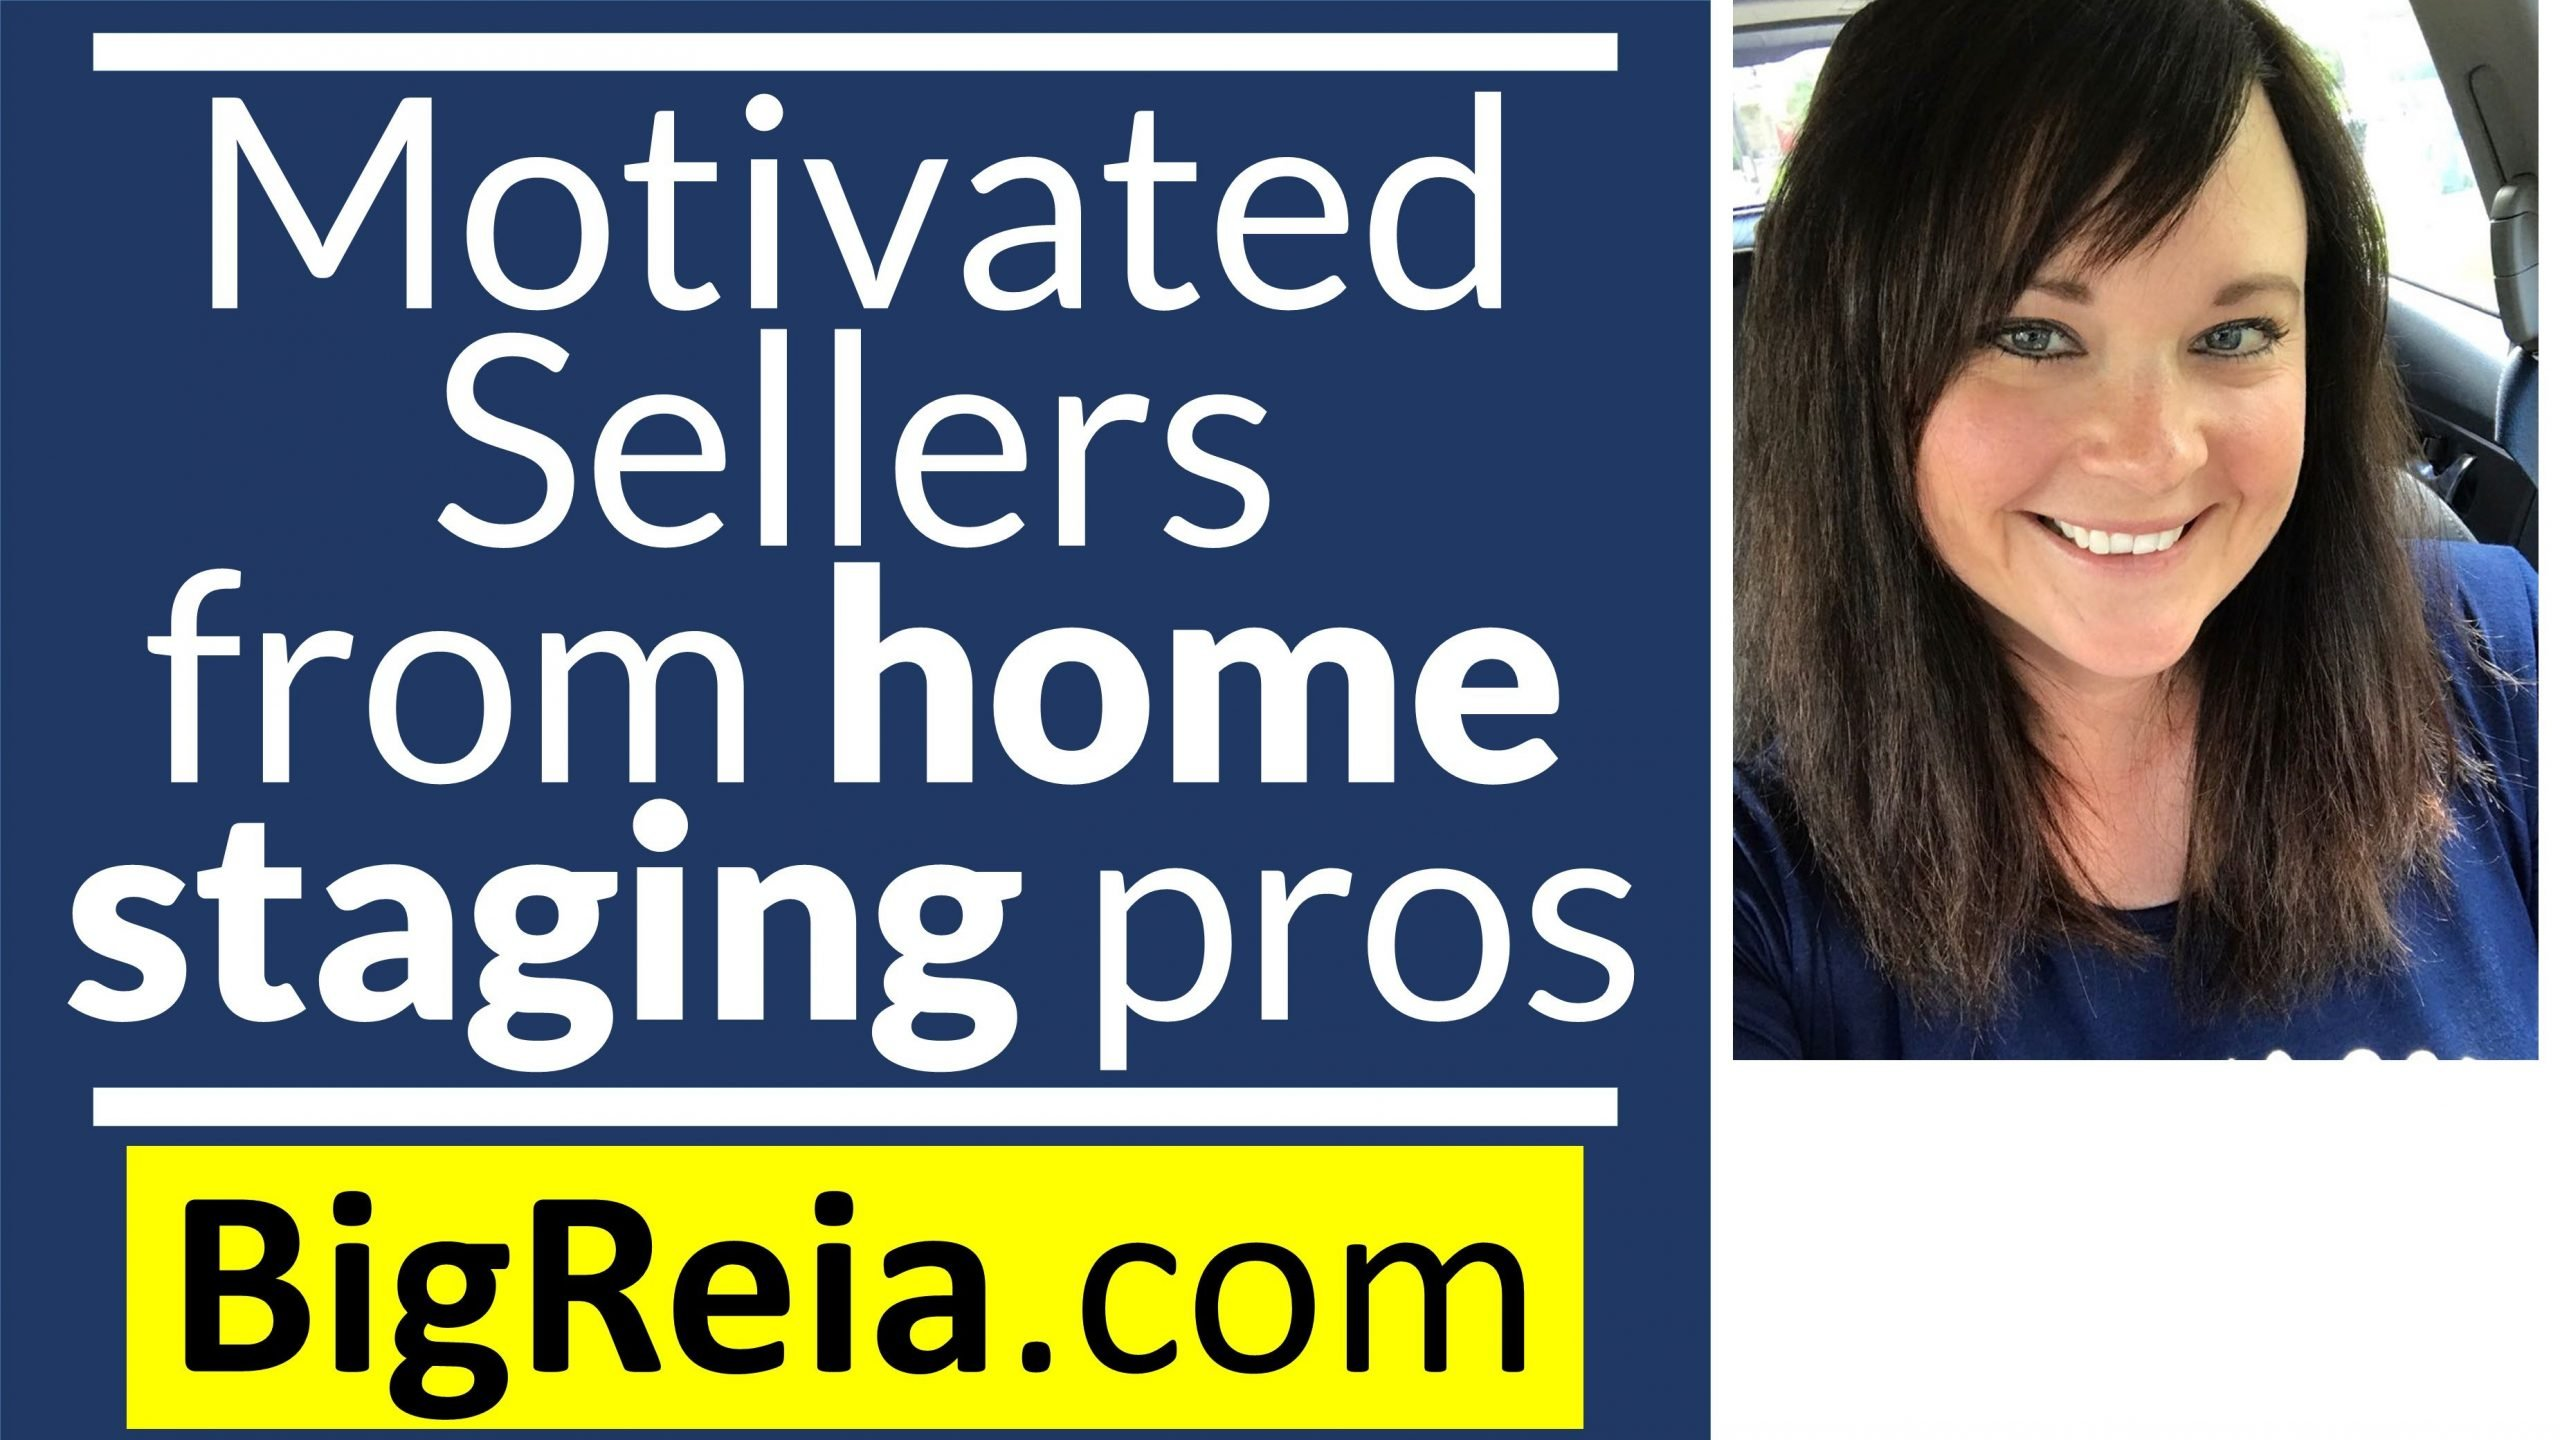 How to get motivated sellers from home staging pros, this will make me an extra $50,000 this year.